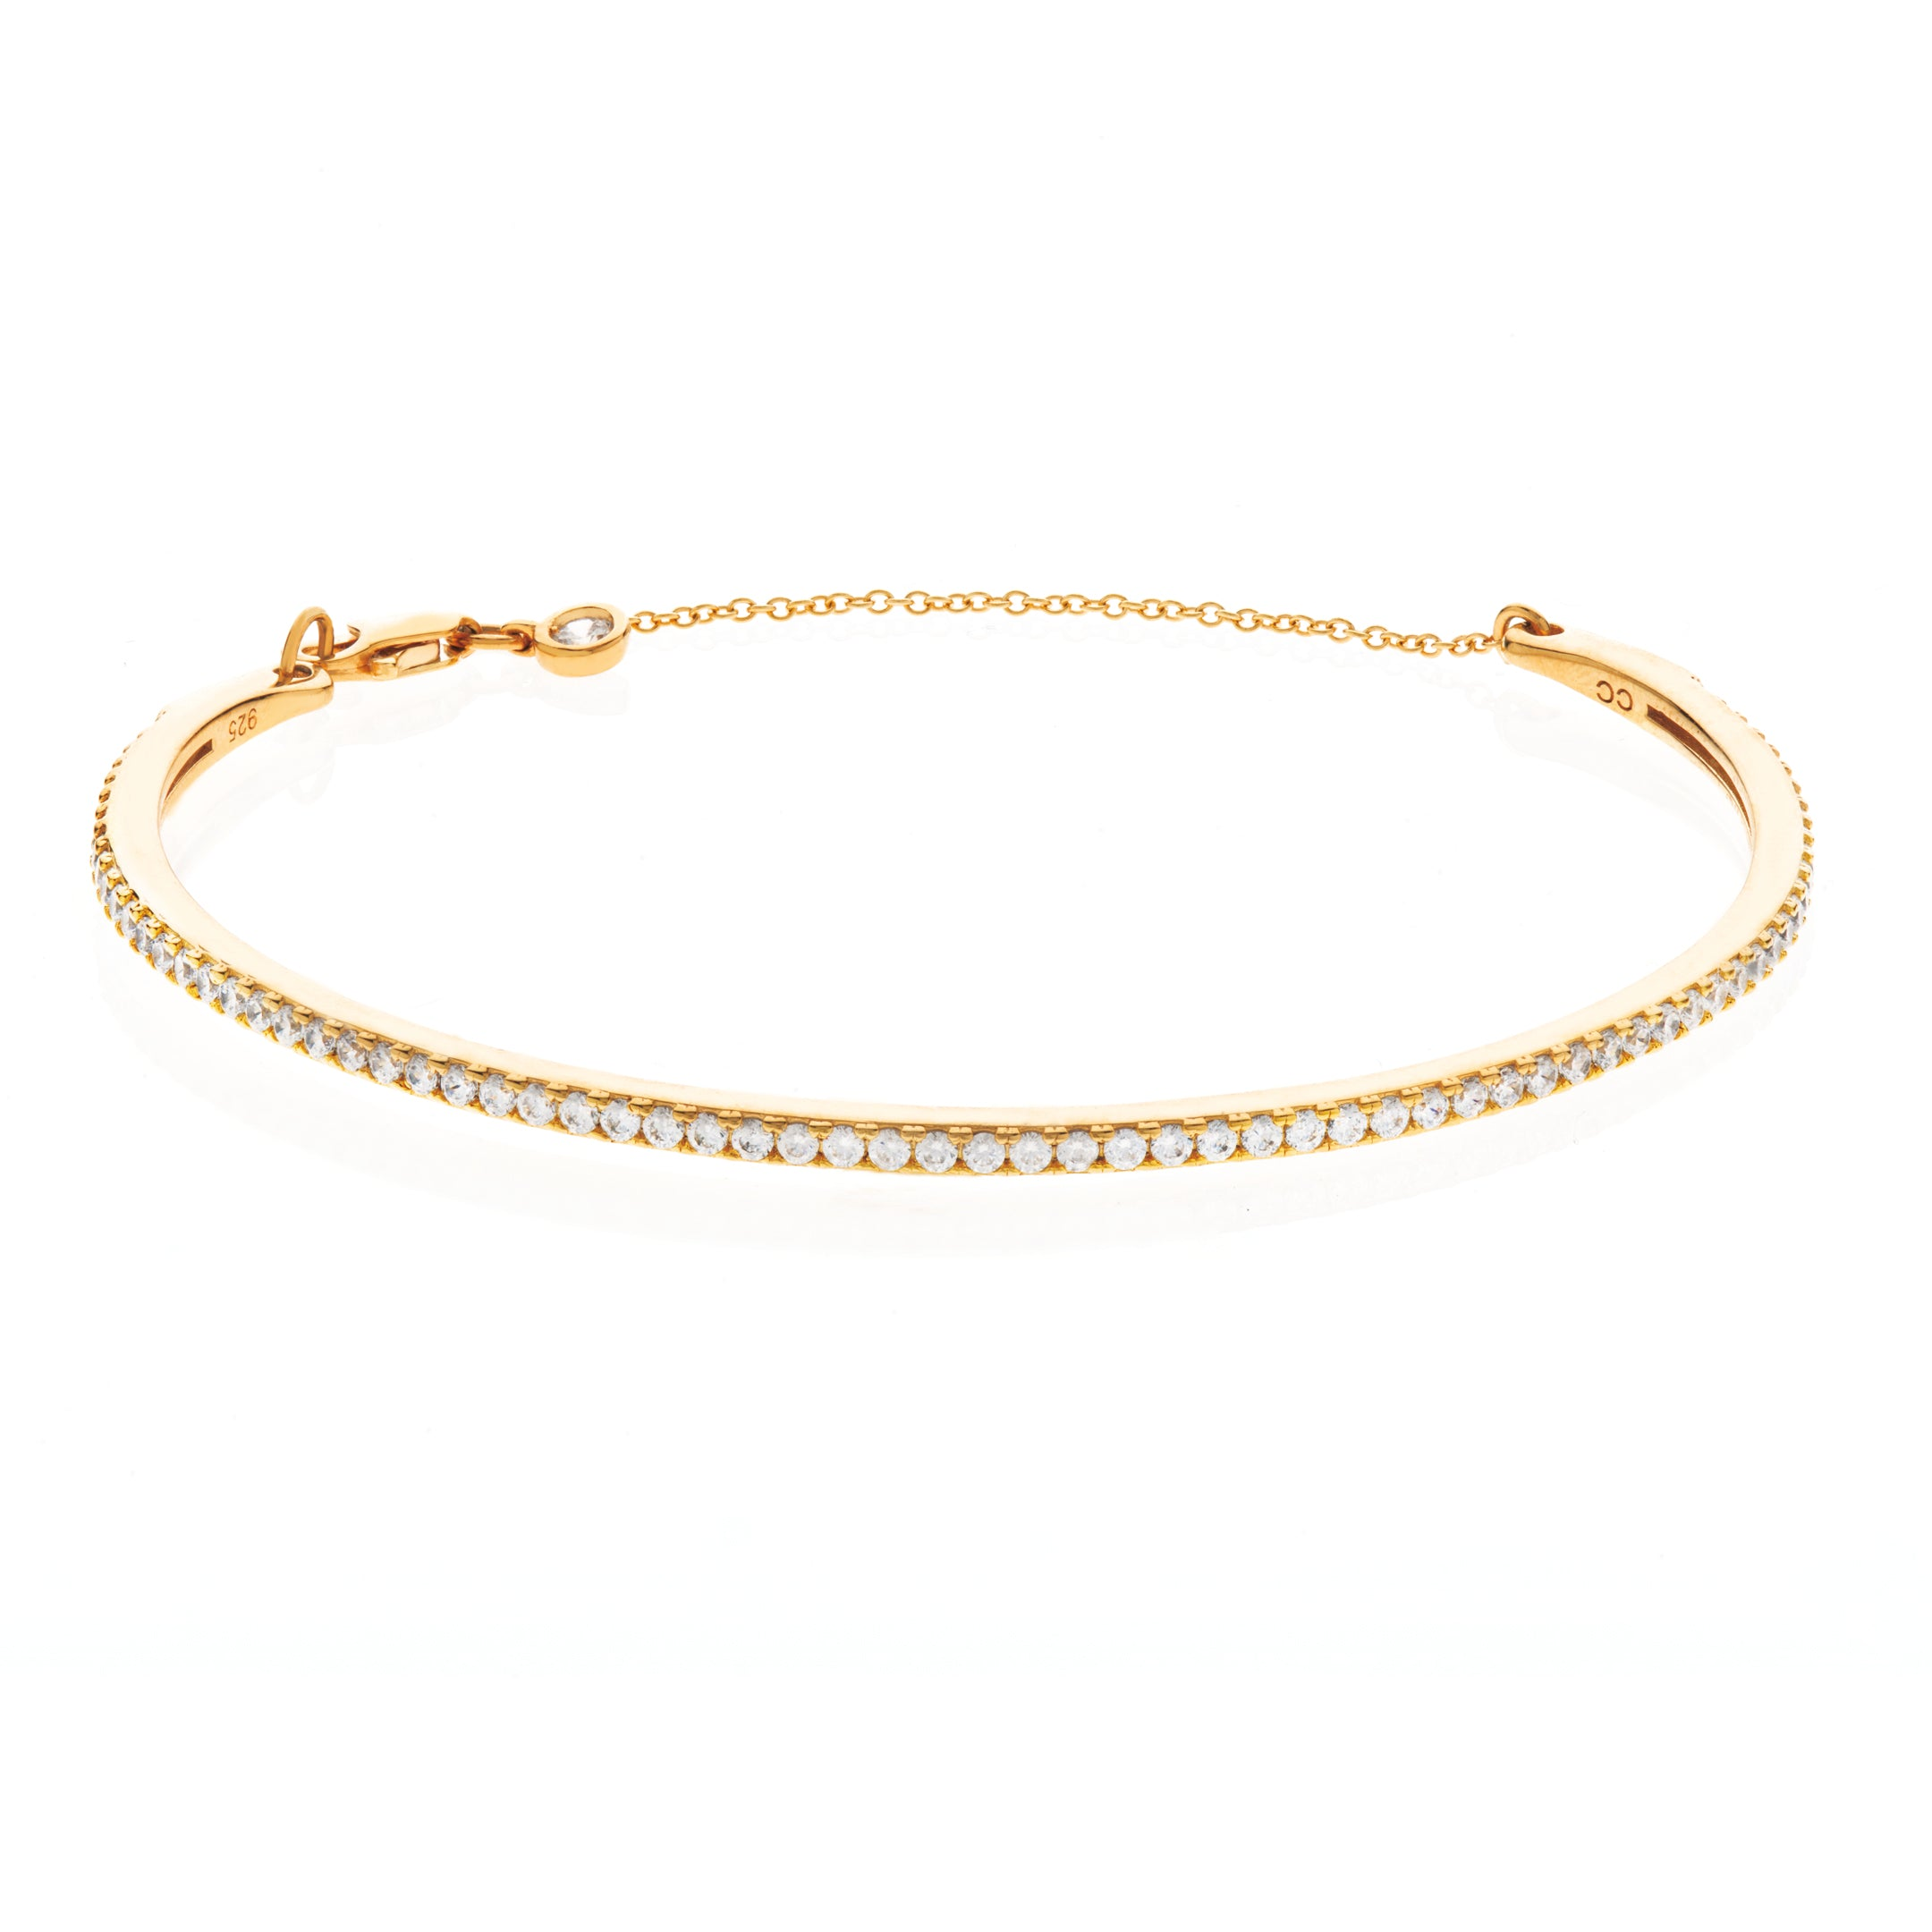 prices compare price in dubai product gold by en anklet uae rose charm design